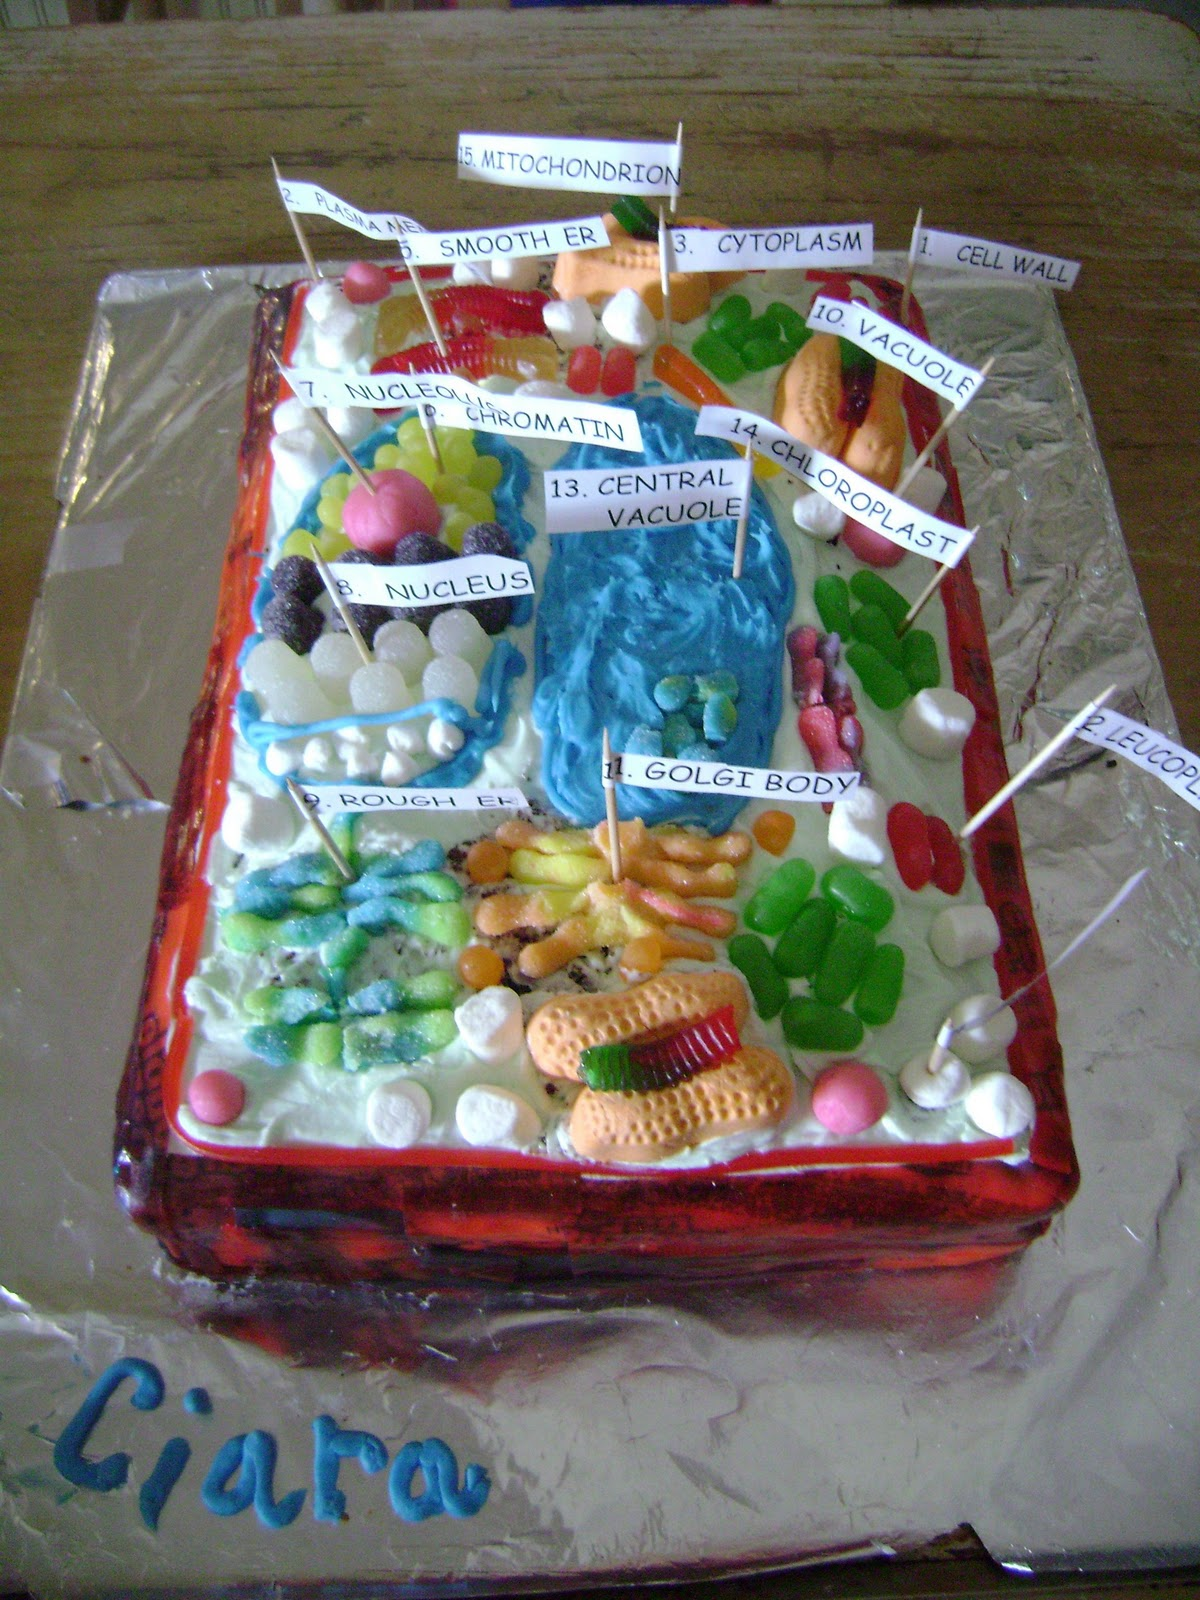 Dylan made an animal cell out of cake with fondant for the organelles.